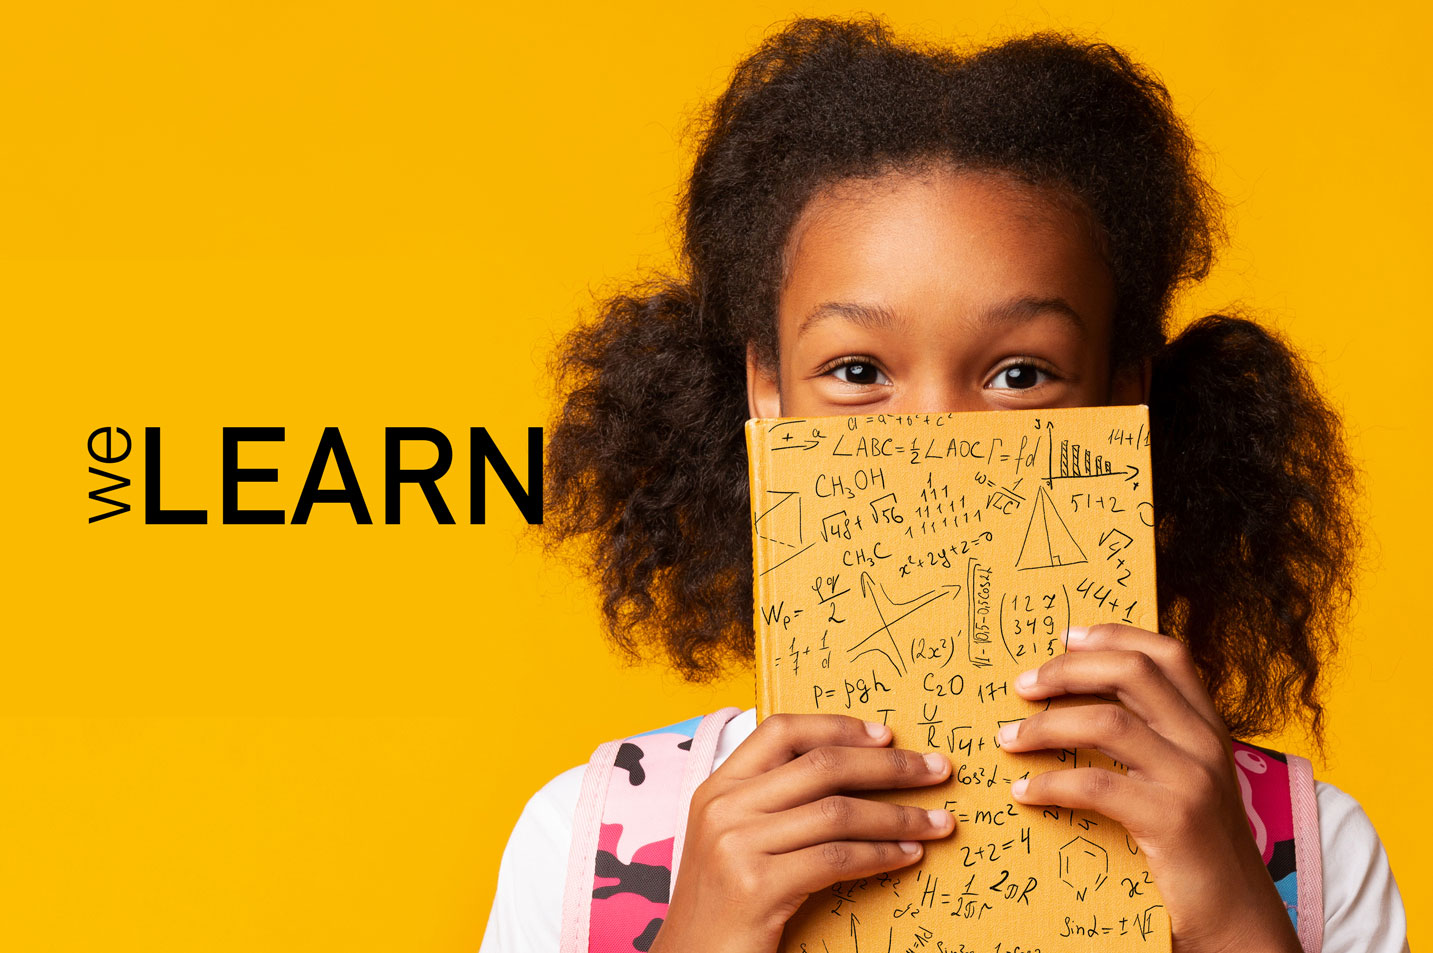 Pupil with curly hair holding a notebook with maths equations on it in front of her nose and mouth, and welearn logo